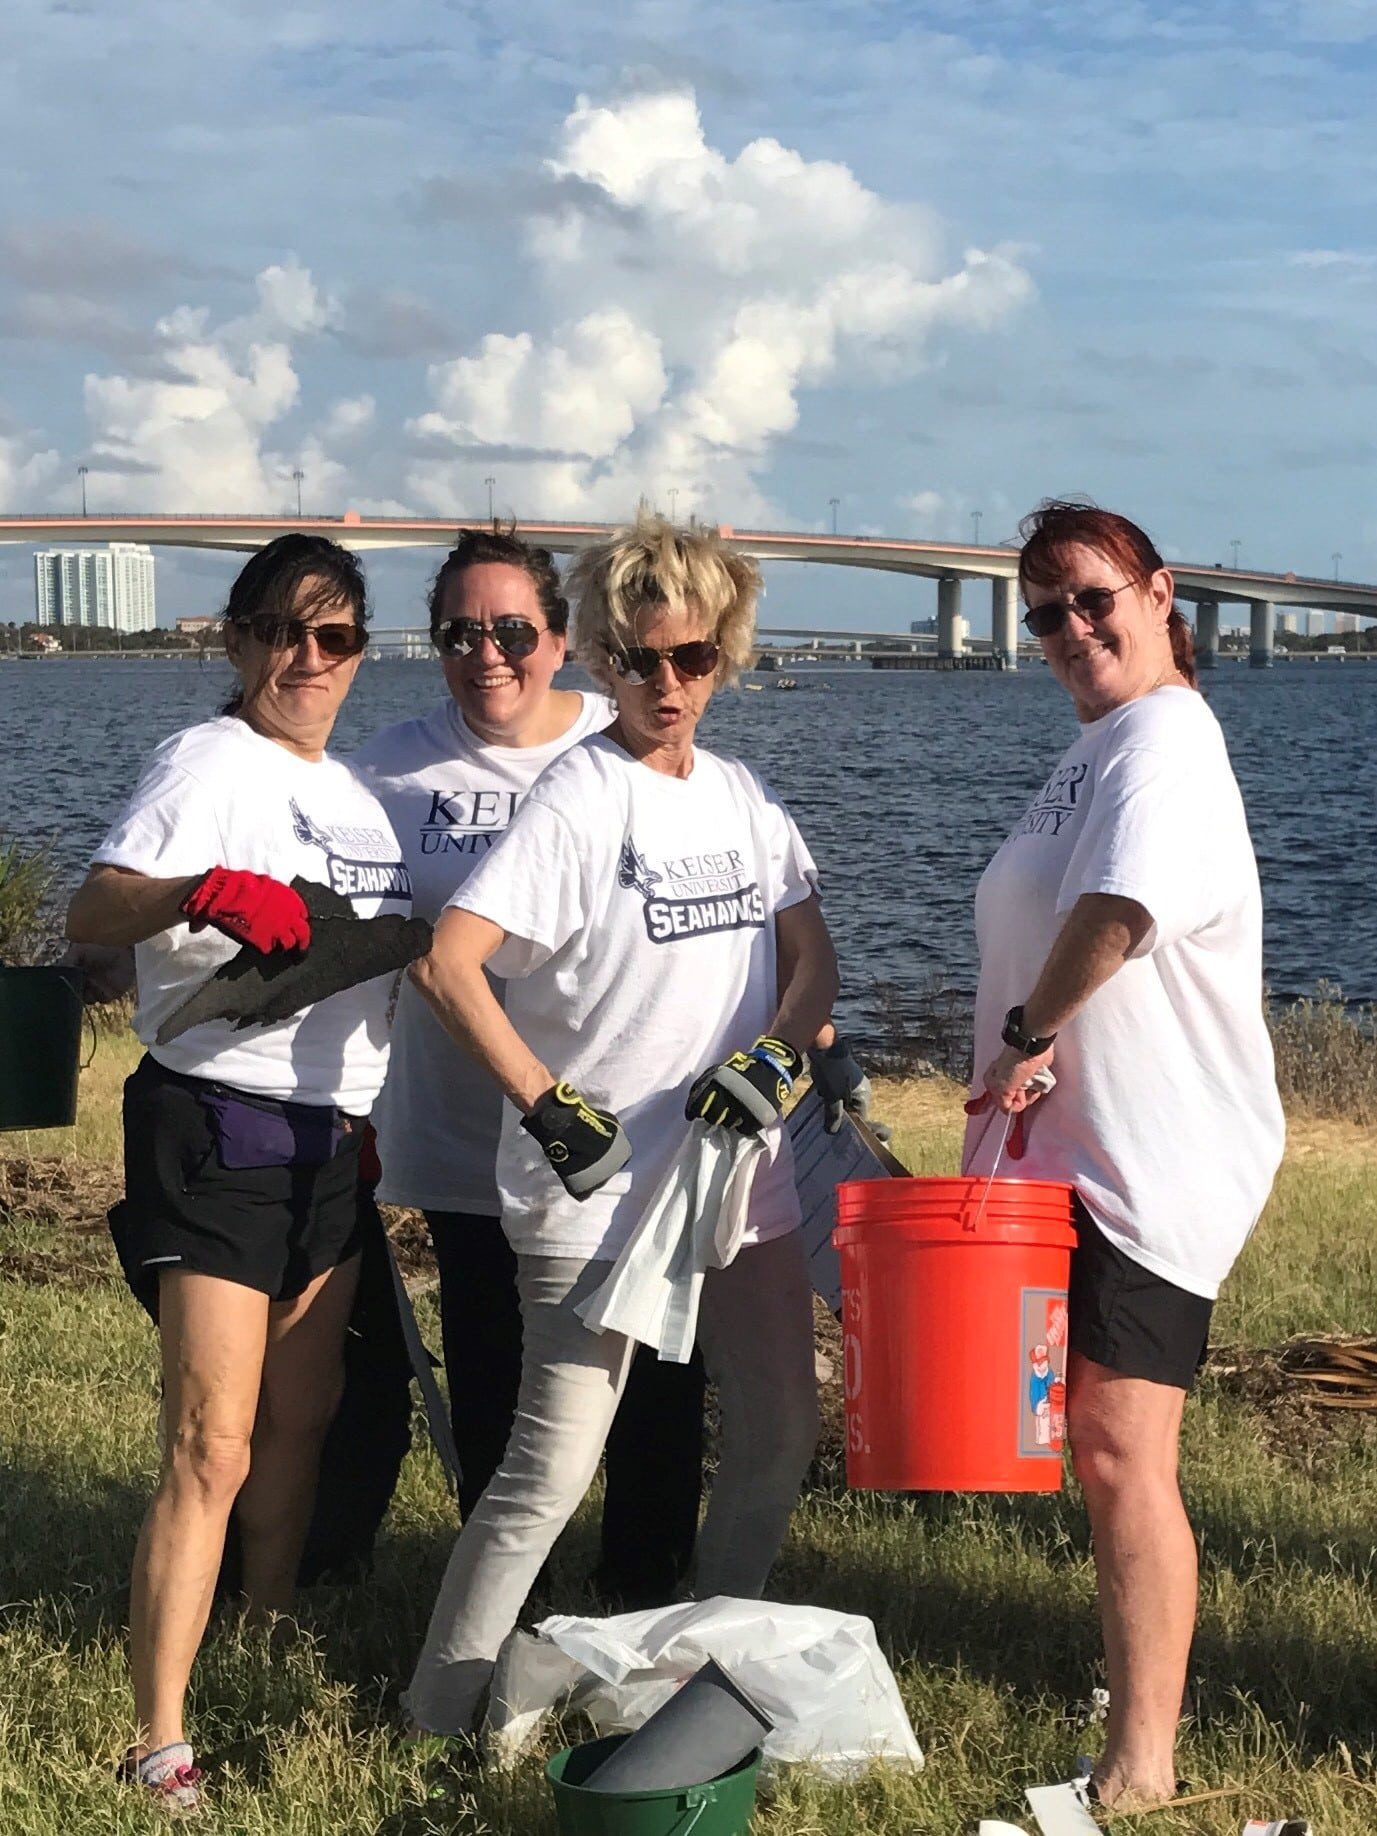 Daytona Campus Participates in Coastal Clean-Up After Hurricane Irma